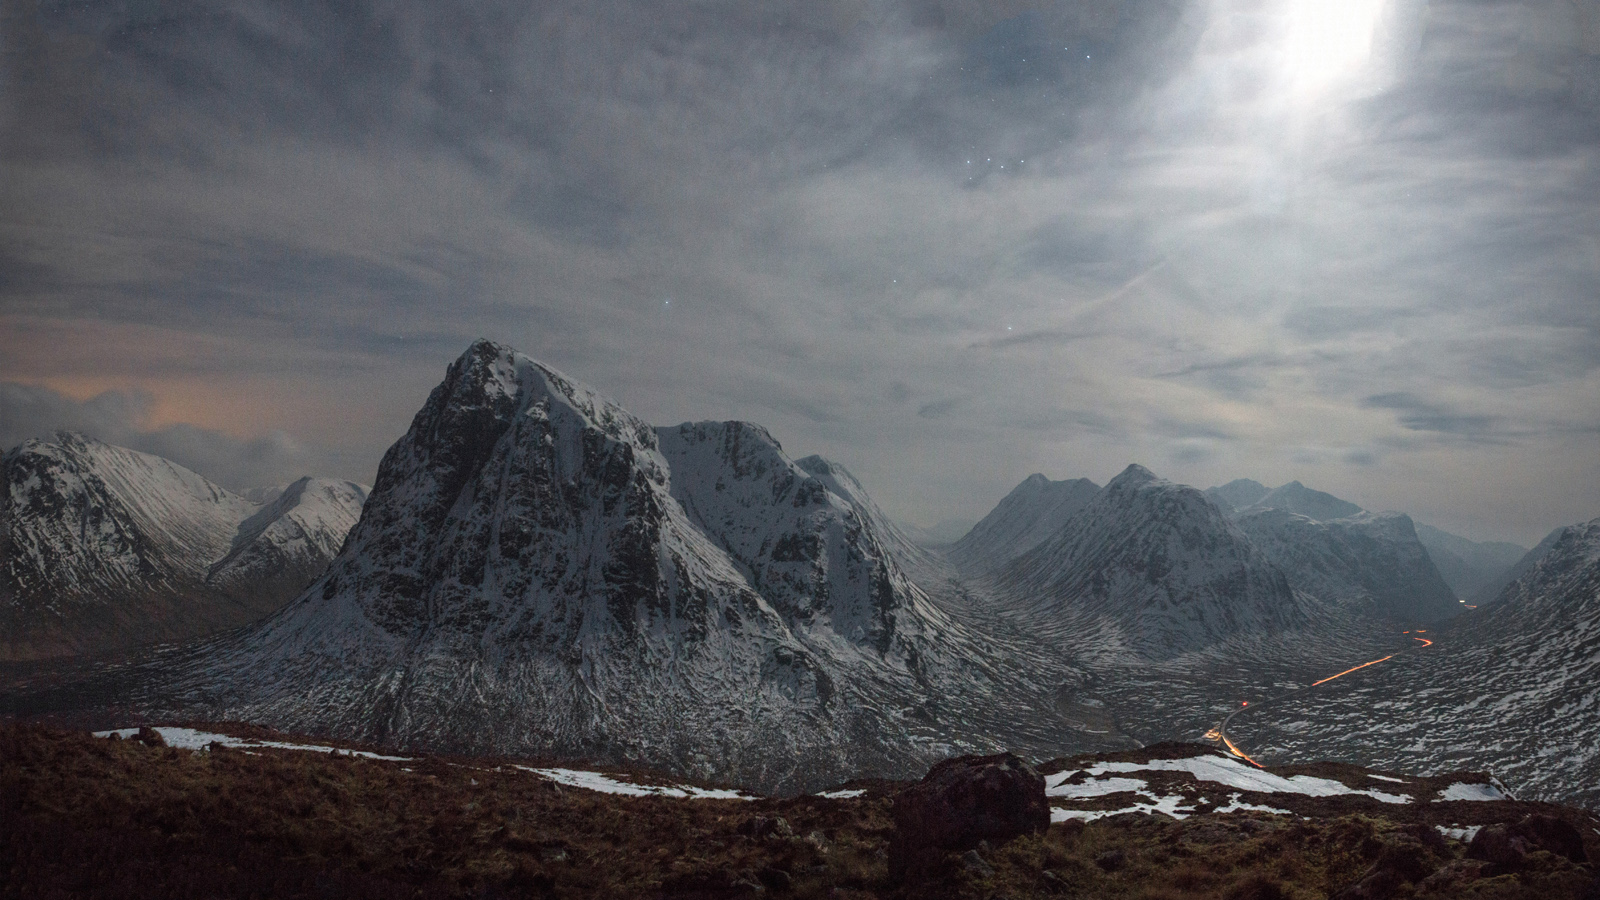 Frosty night in glen coe.jpg